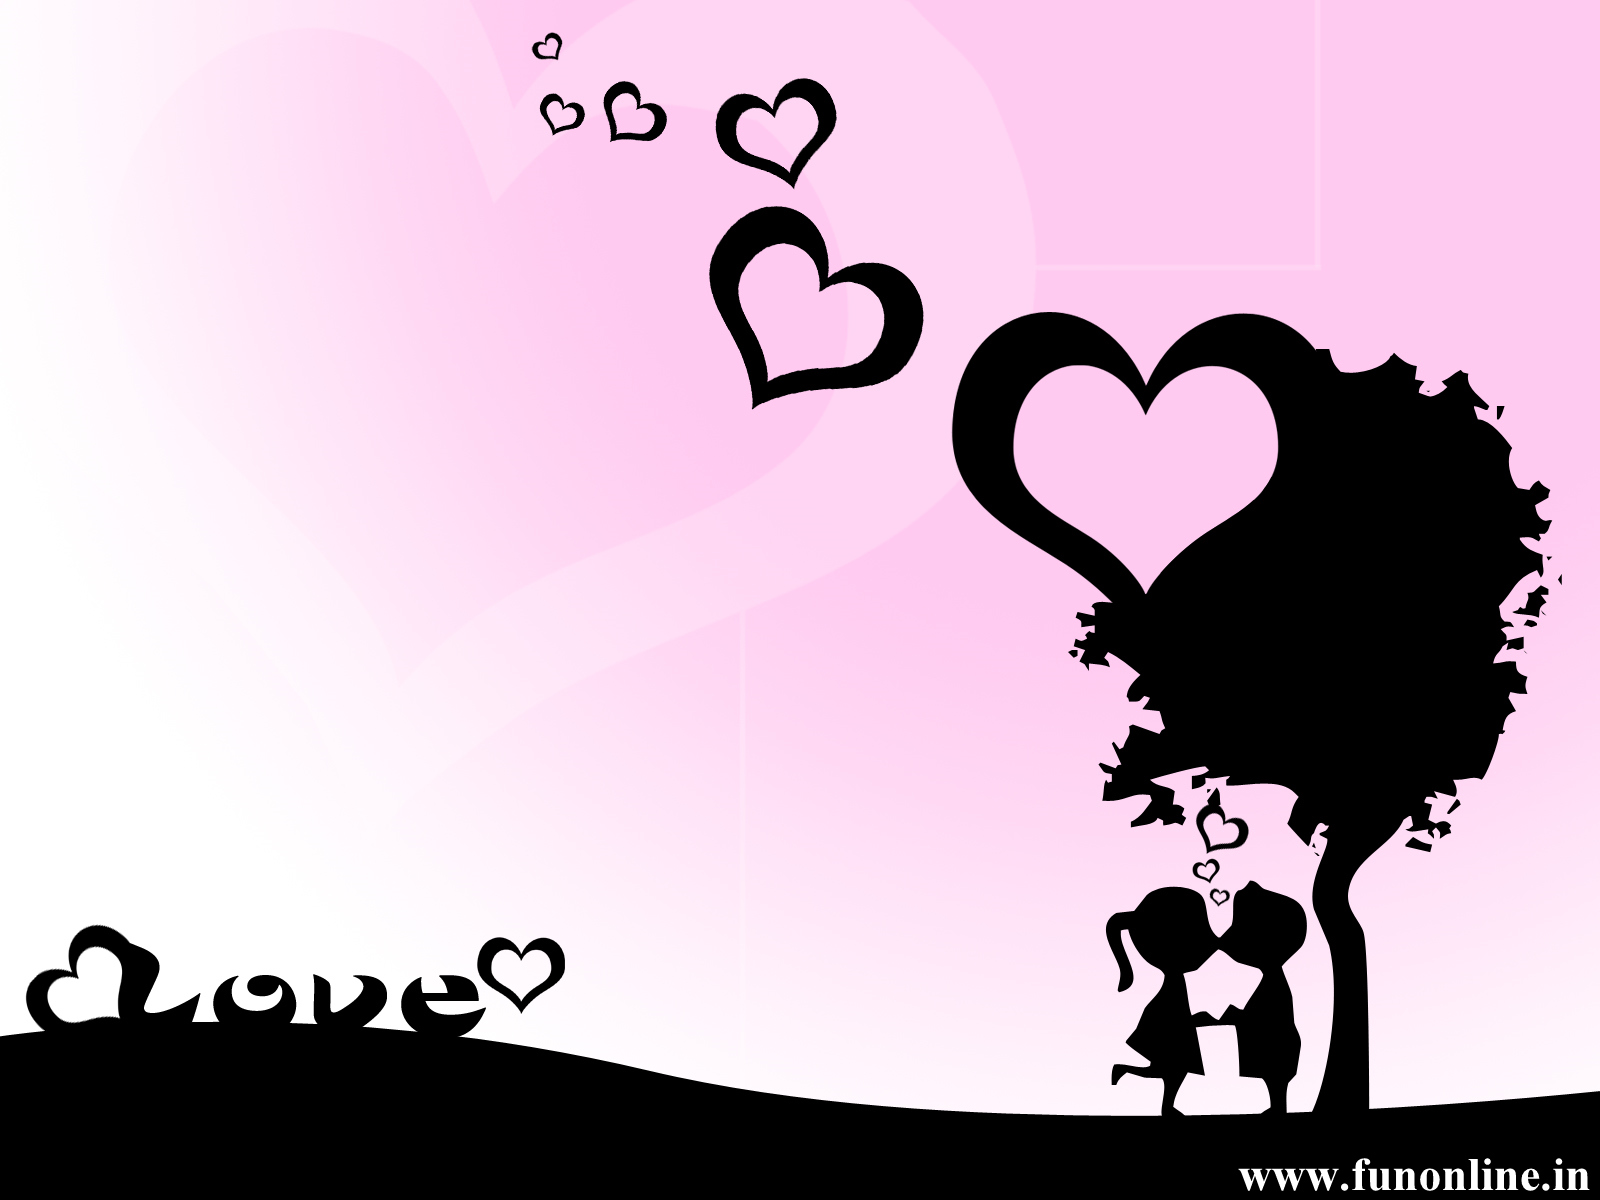 Romantic and Cute Love Wallpaper